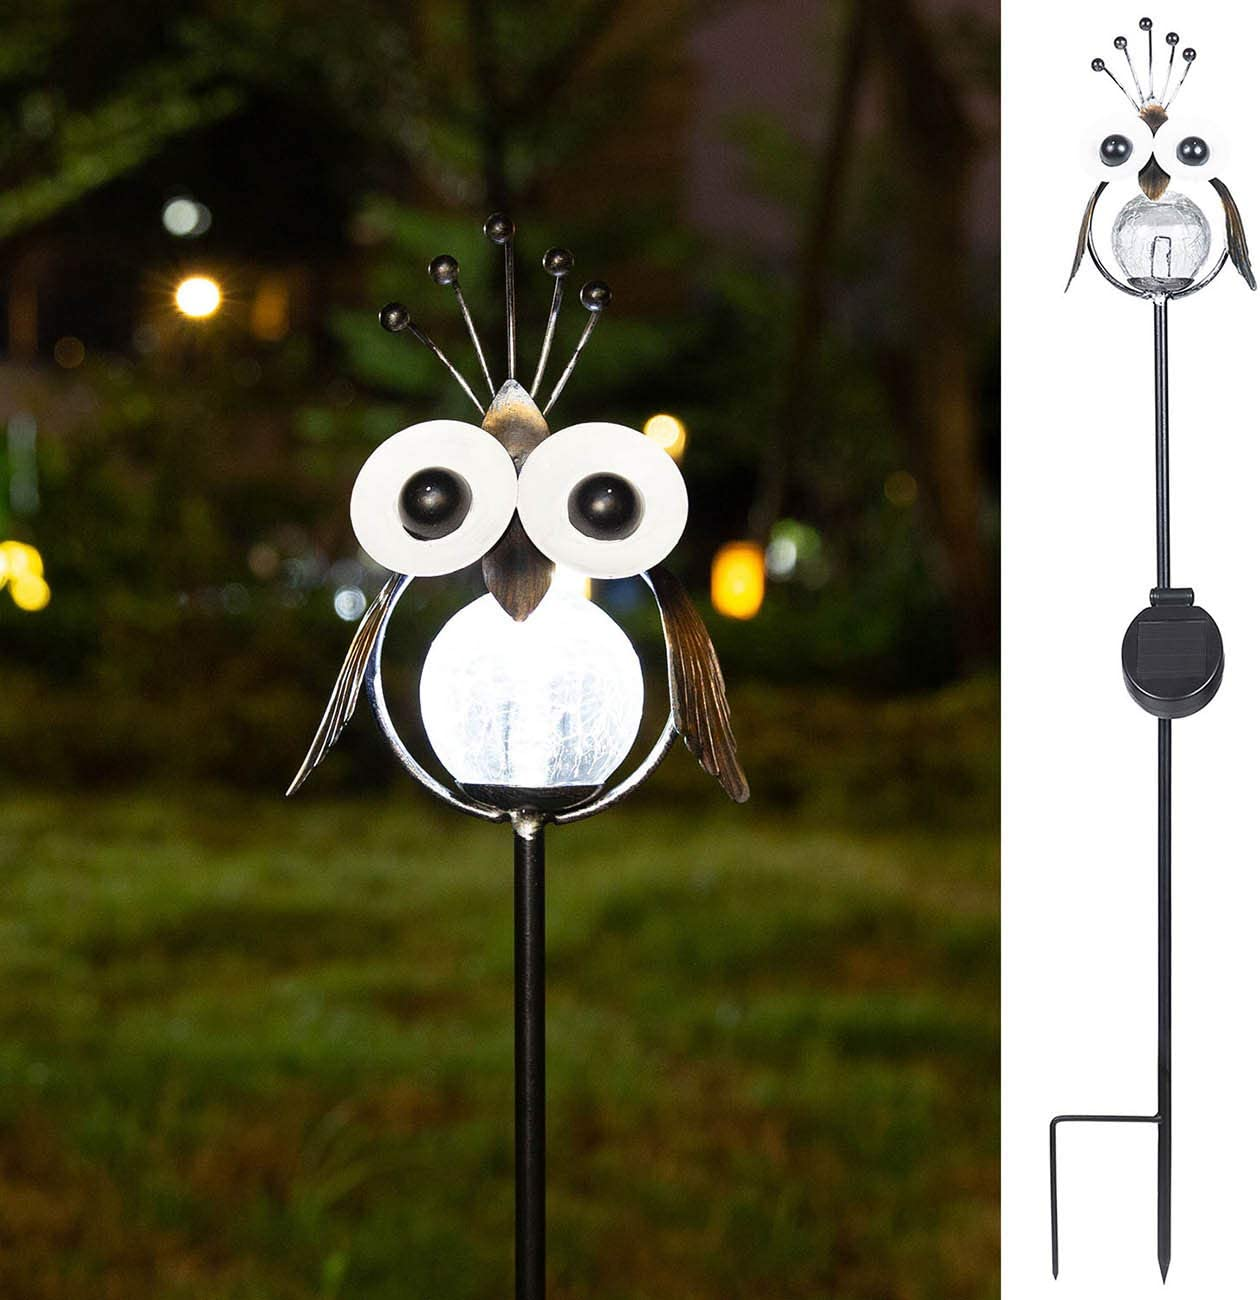 Jy.Cozy Garden Solar Owl Decorative Lights Outdoor Pathway Crackle Glass Globe Stake Metal Lantern Waterproof Warm White LED for Lawn Patio Courtyard